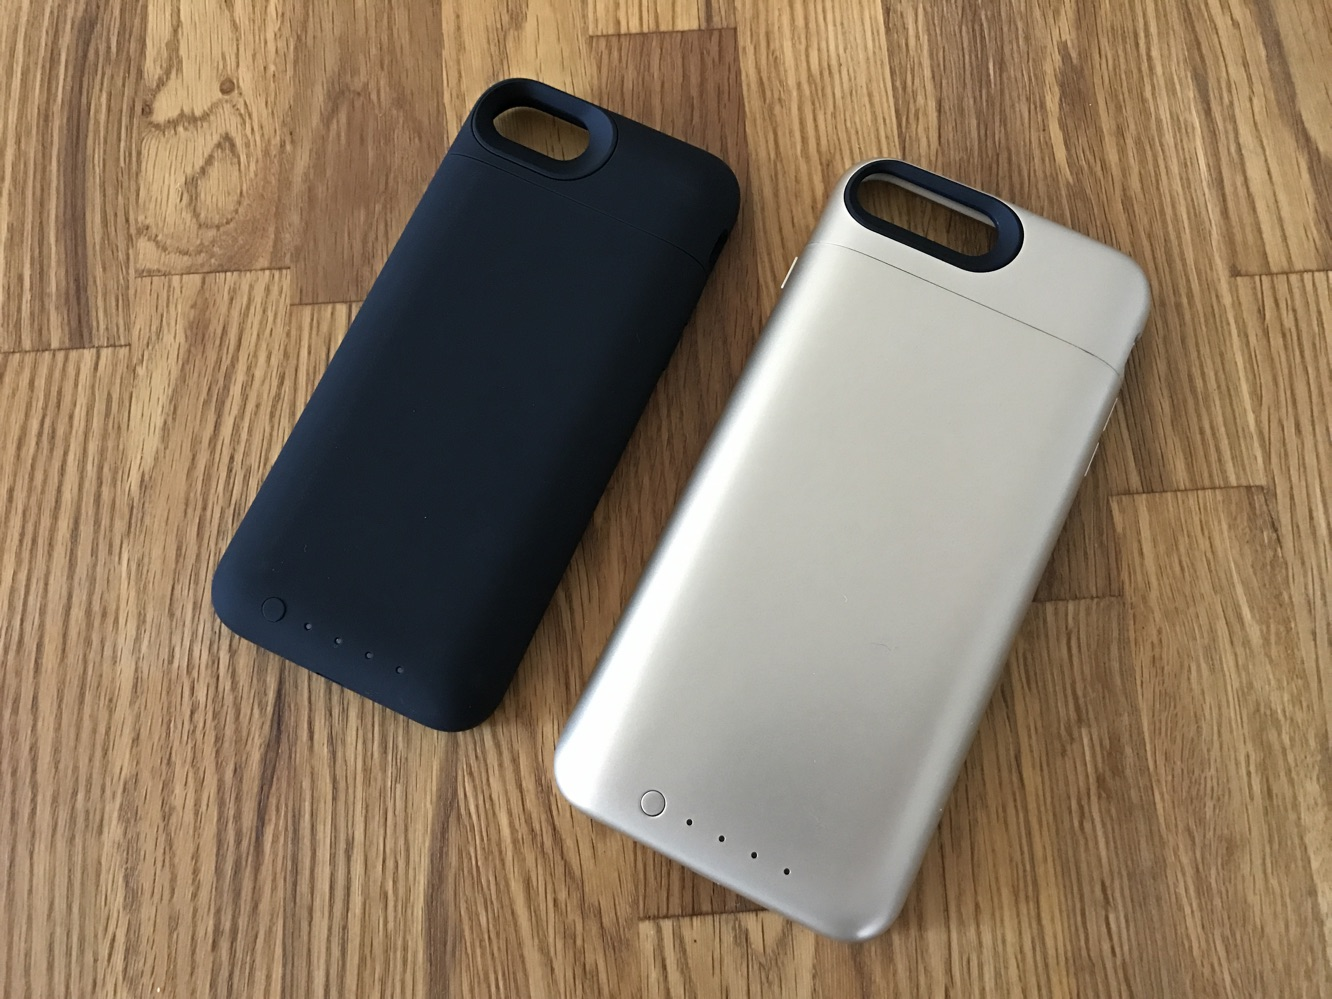 Mophie Juice Pack Air for iPhone 7 and iPhone 7 Plus 8